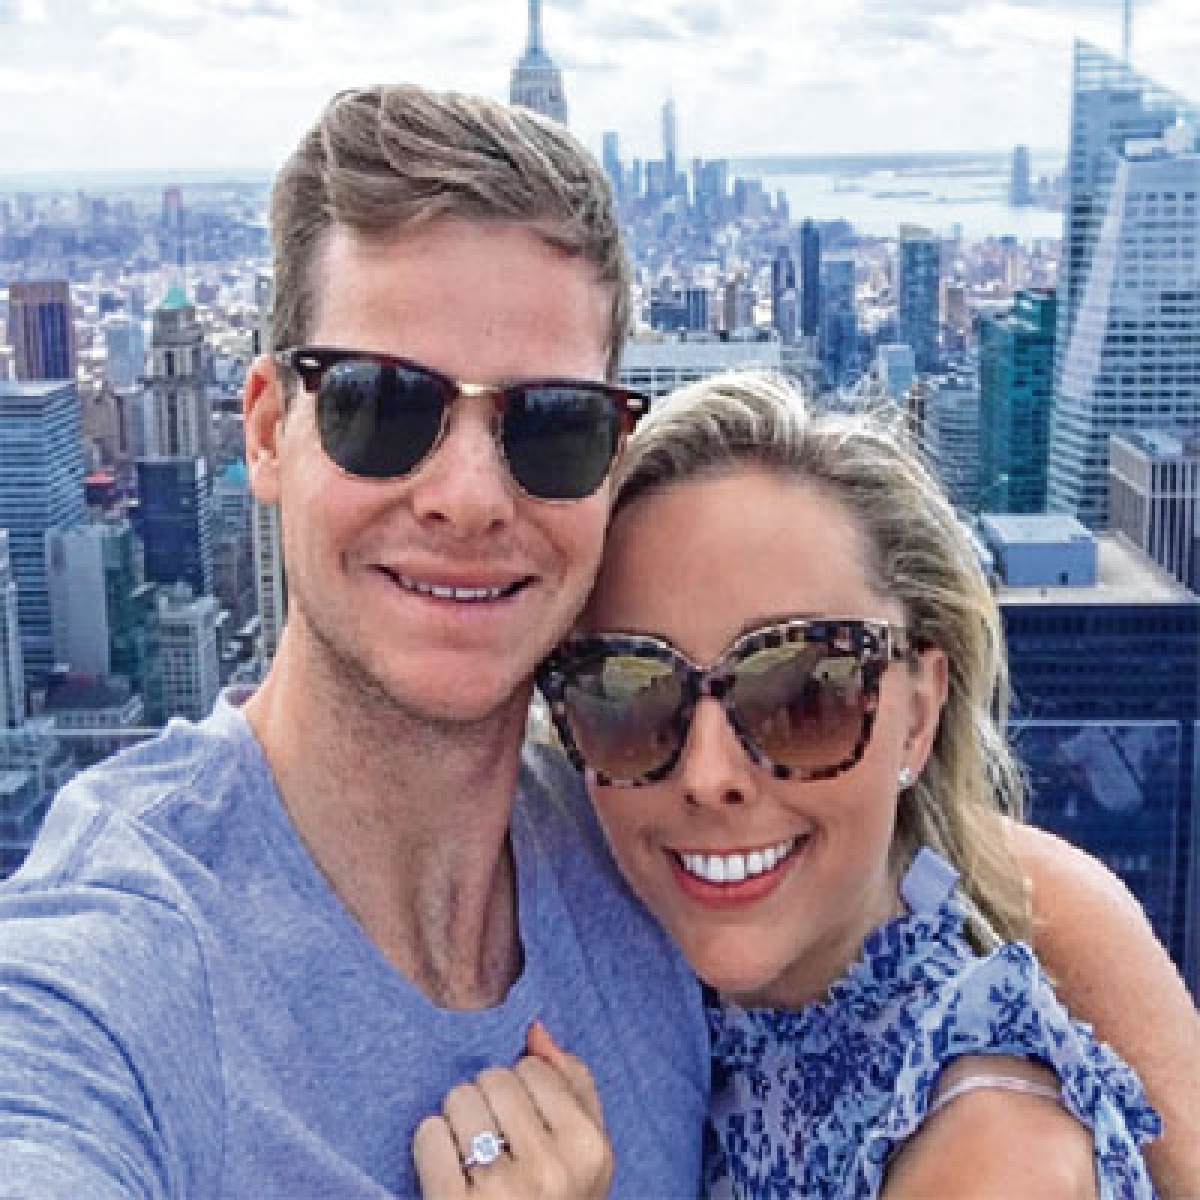 Steve Smith is now officially engaged